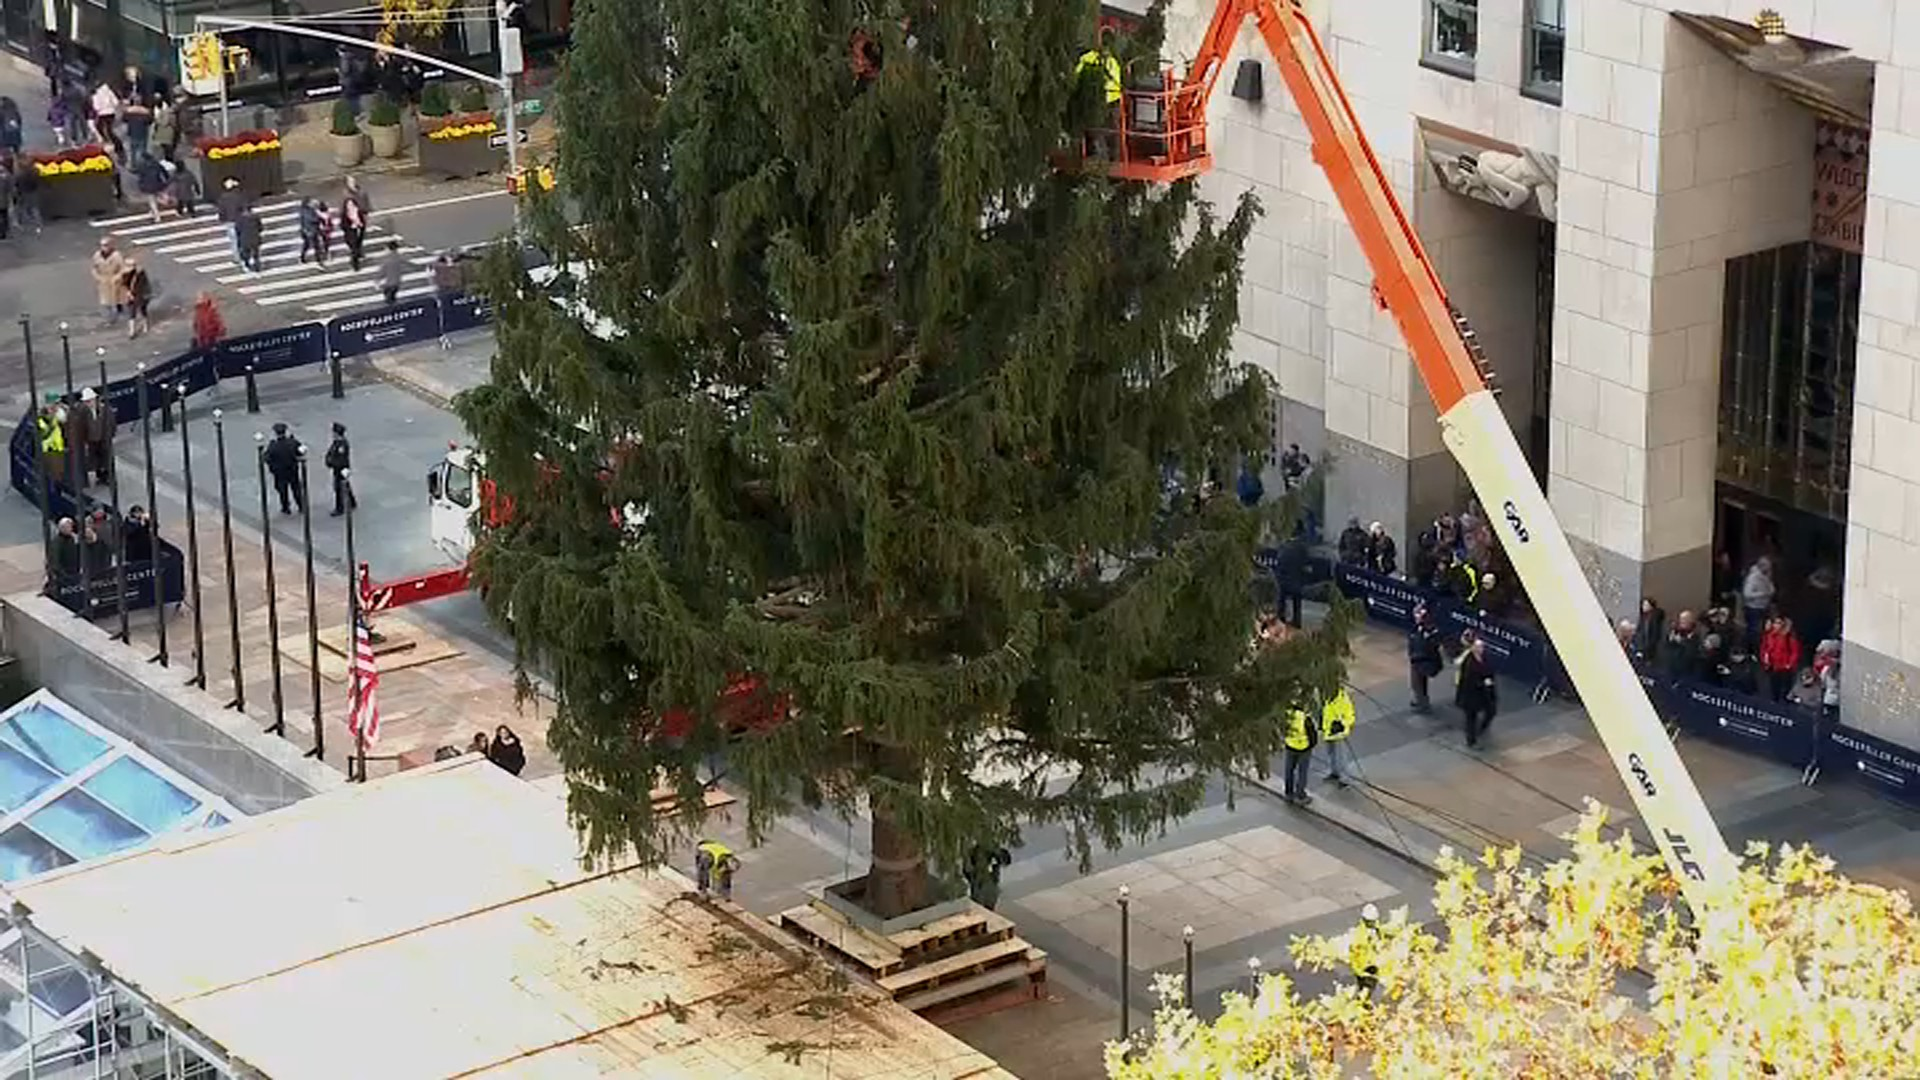 In Photos: 2018 Christmas Tree Arrives at Rockefeller Center - New ...